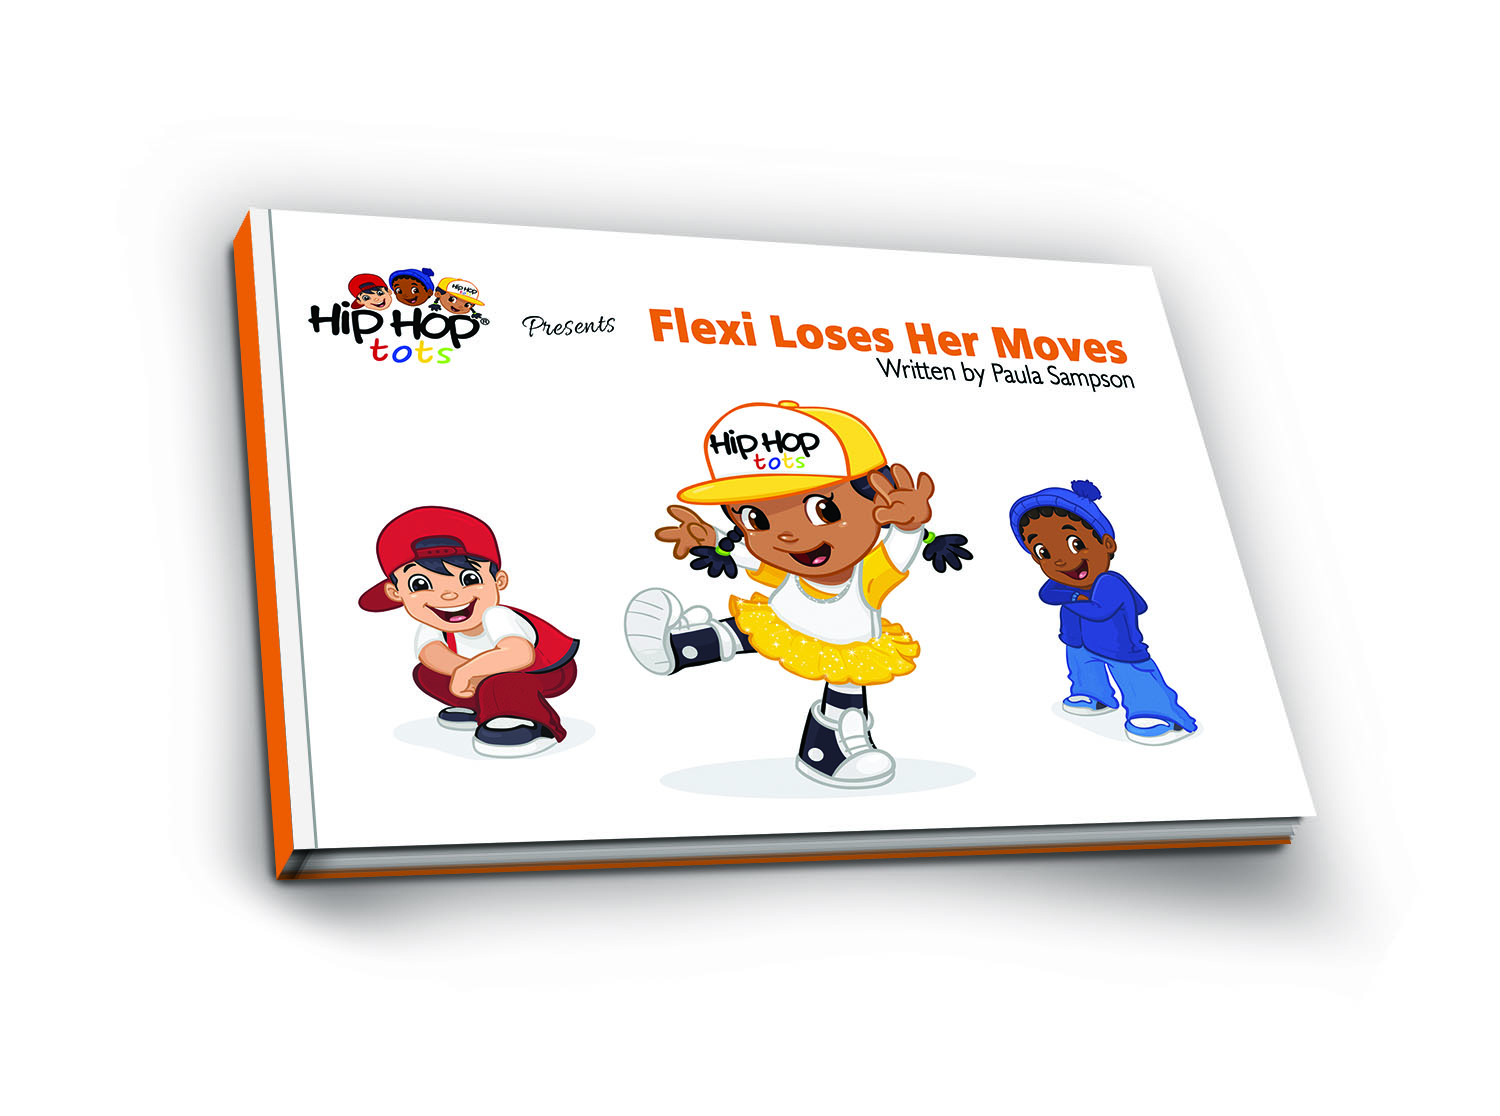 Flexi Loses Her Moves - a dance picture book